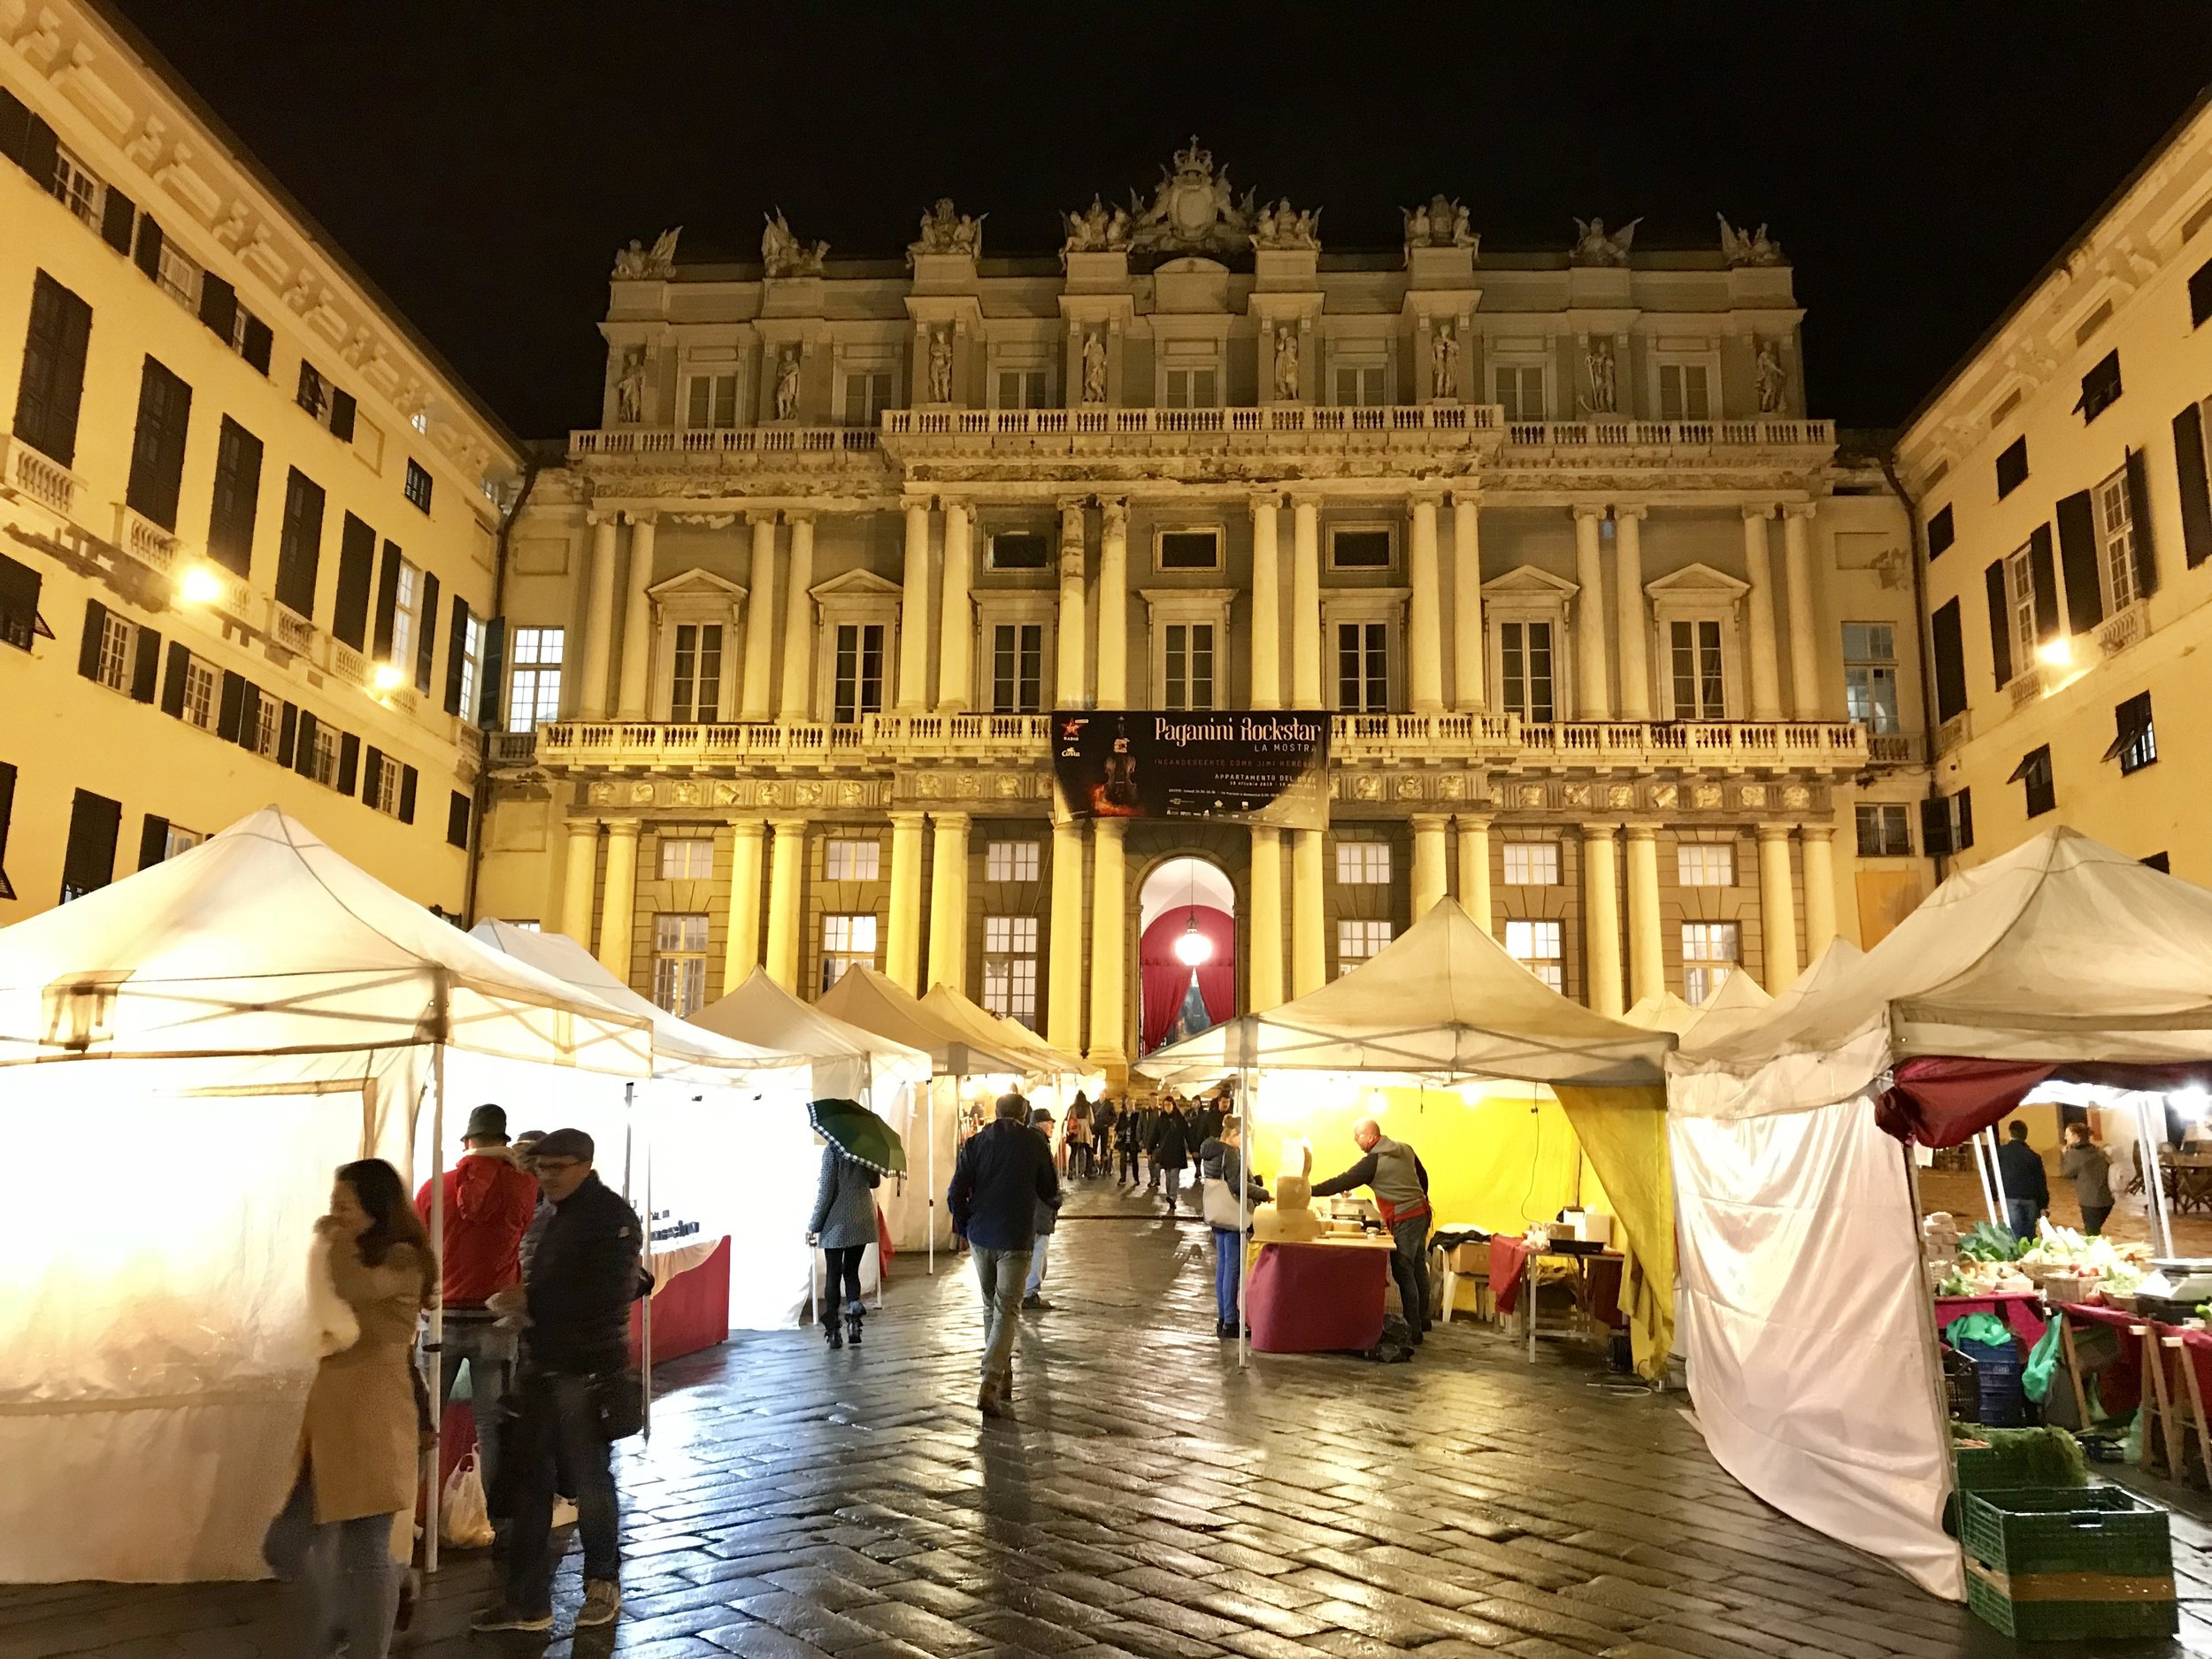 A street market in the courtyard of the Palazzo Ducale